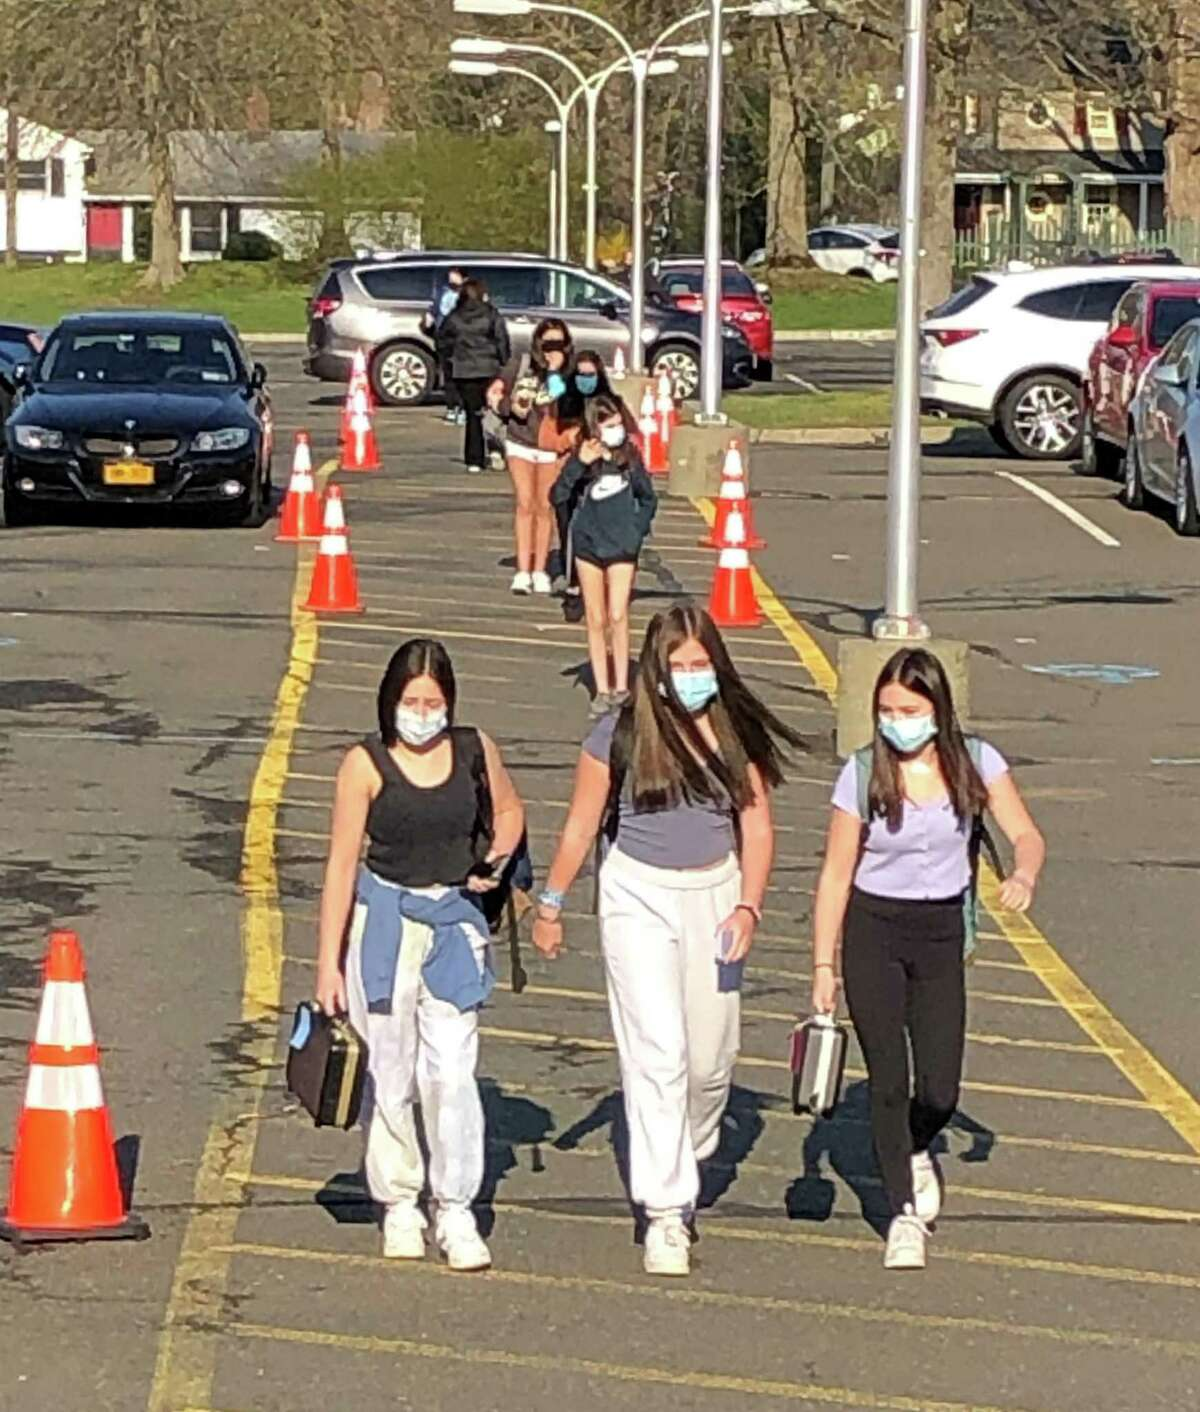 Ridgefield students will have to continue wearing masks while inside school buildings or buses next year, district officials announced Thursday.